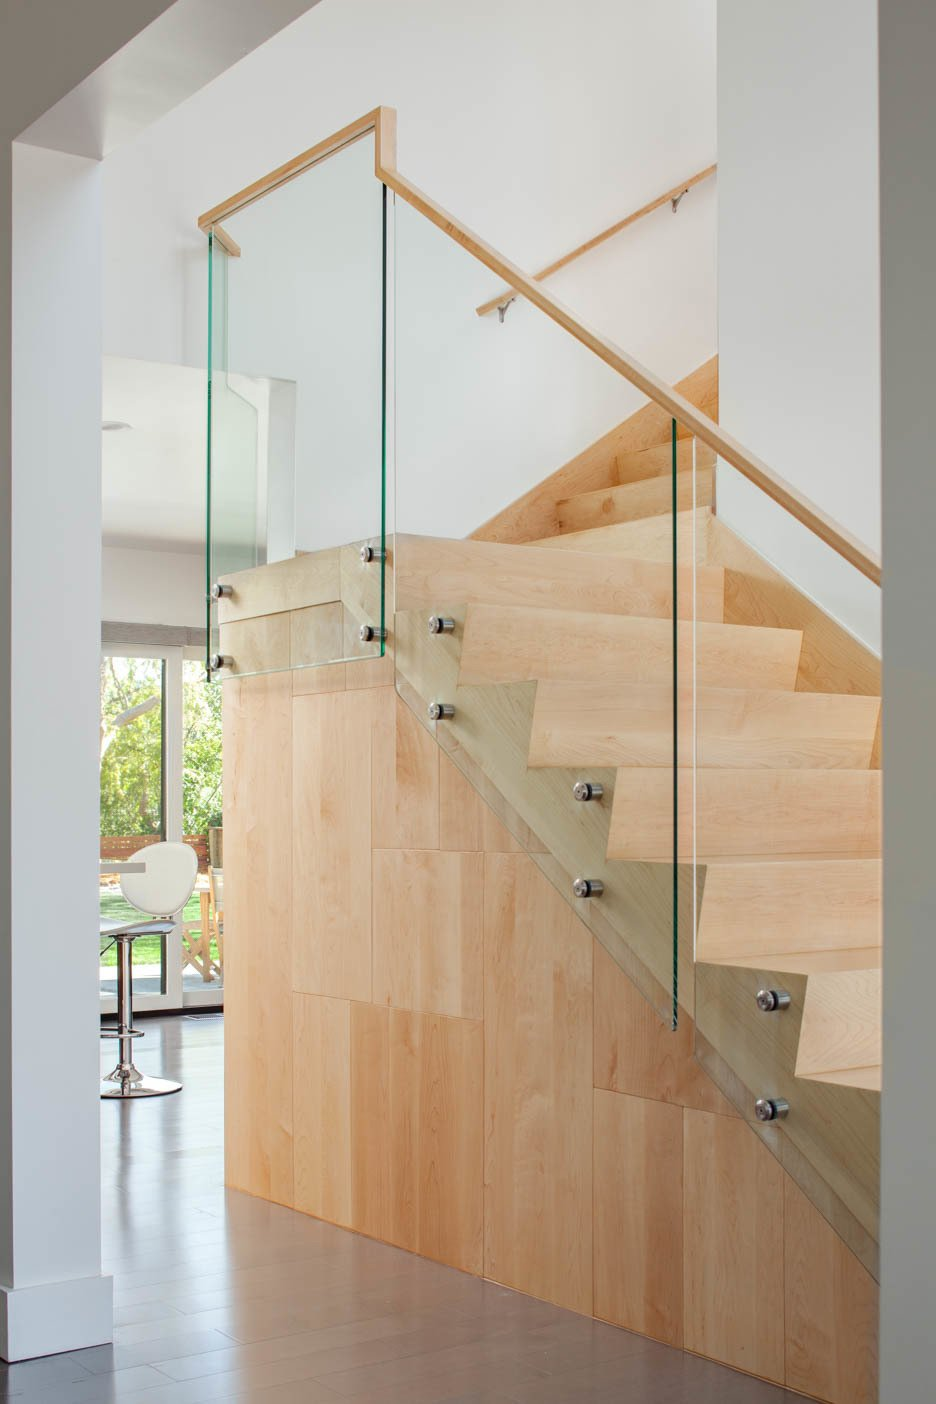 Custom maple wood and glass staircase